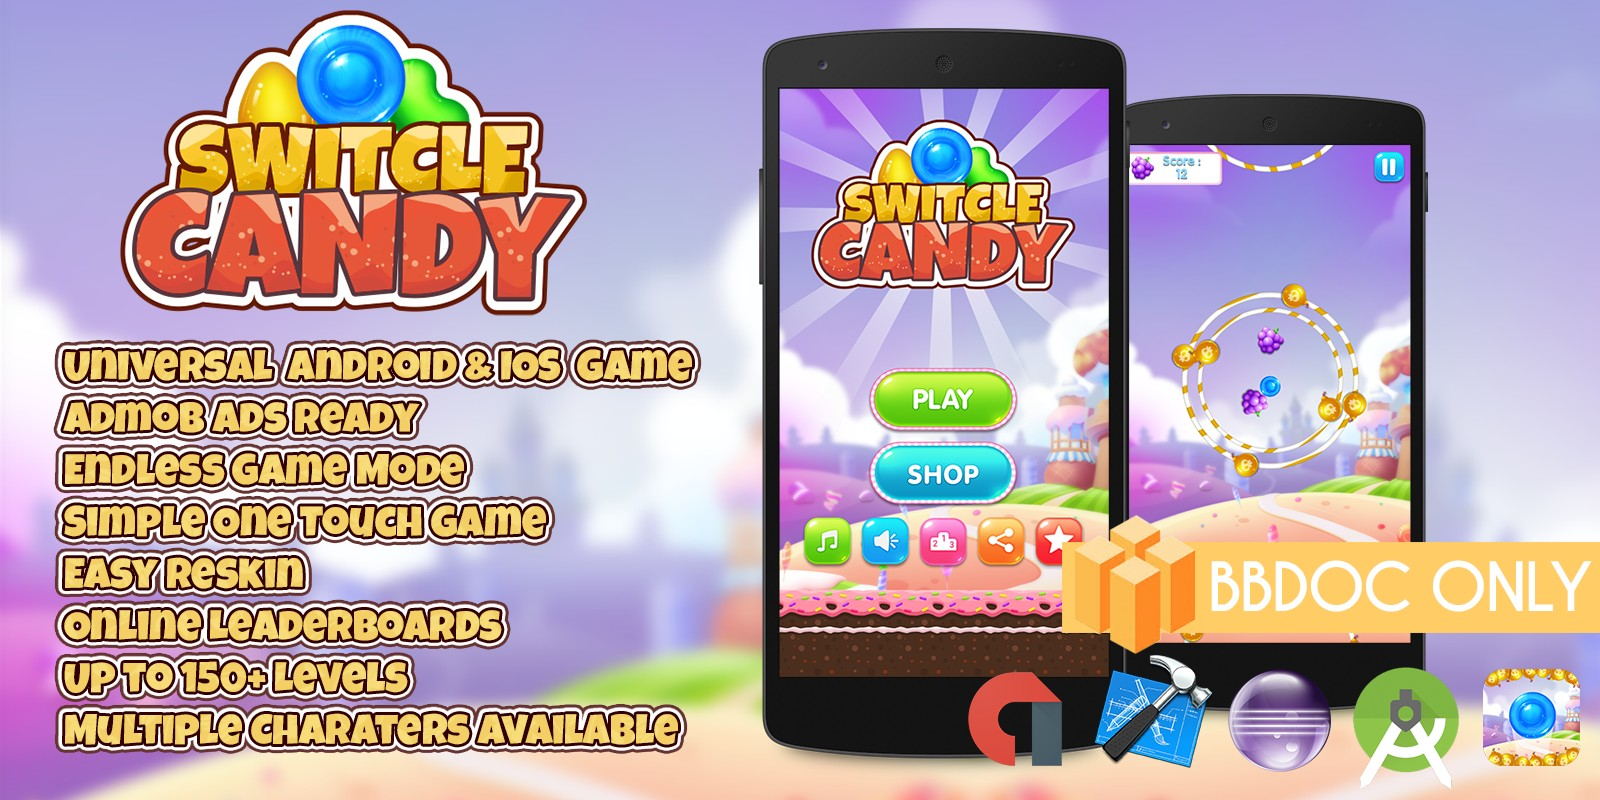 Switcle Candy - Buildbox Game Template